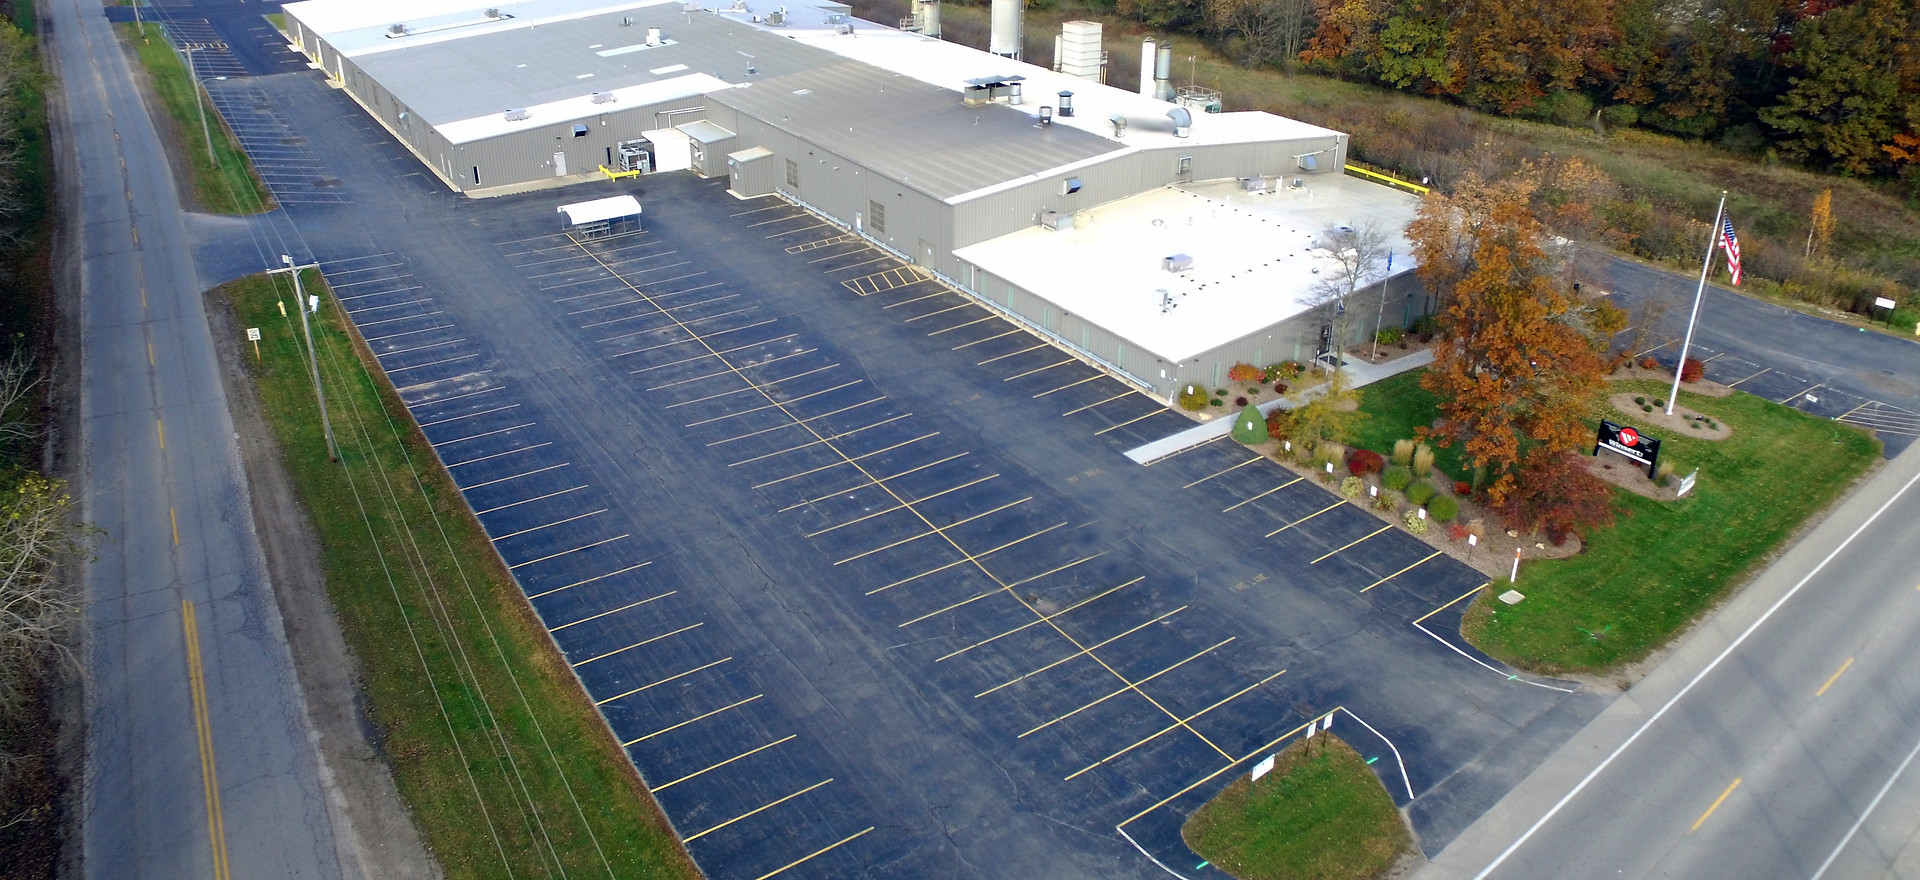 Winsert Headquarters & Manufacturing Facility